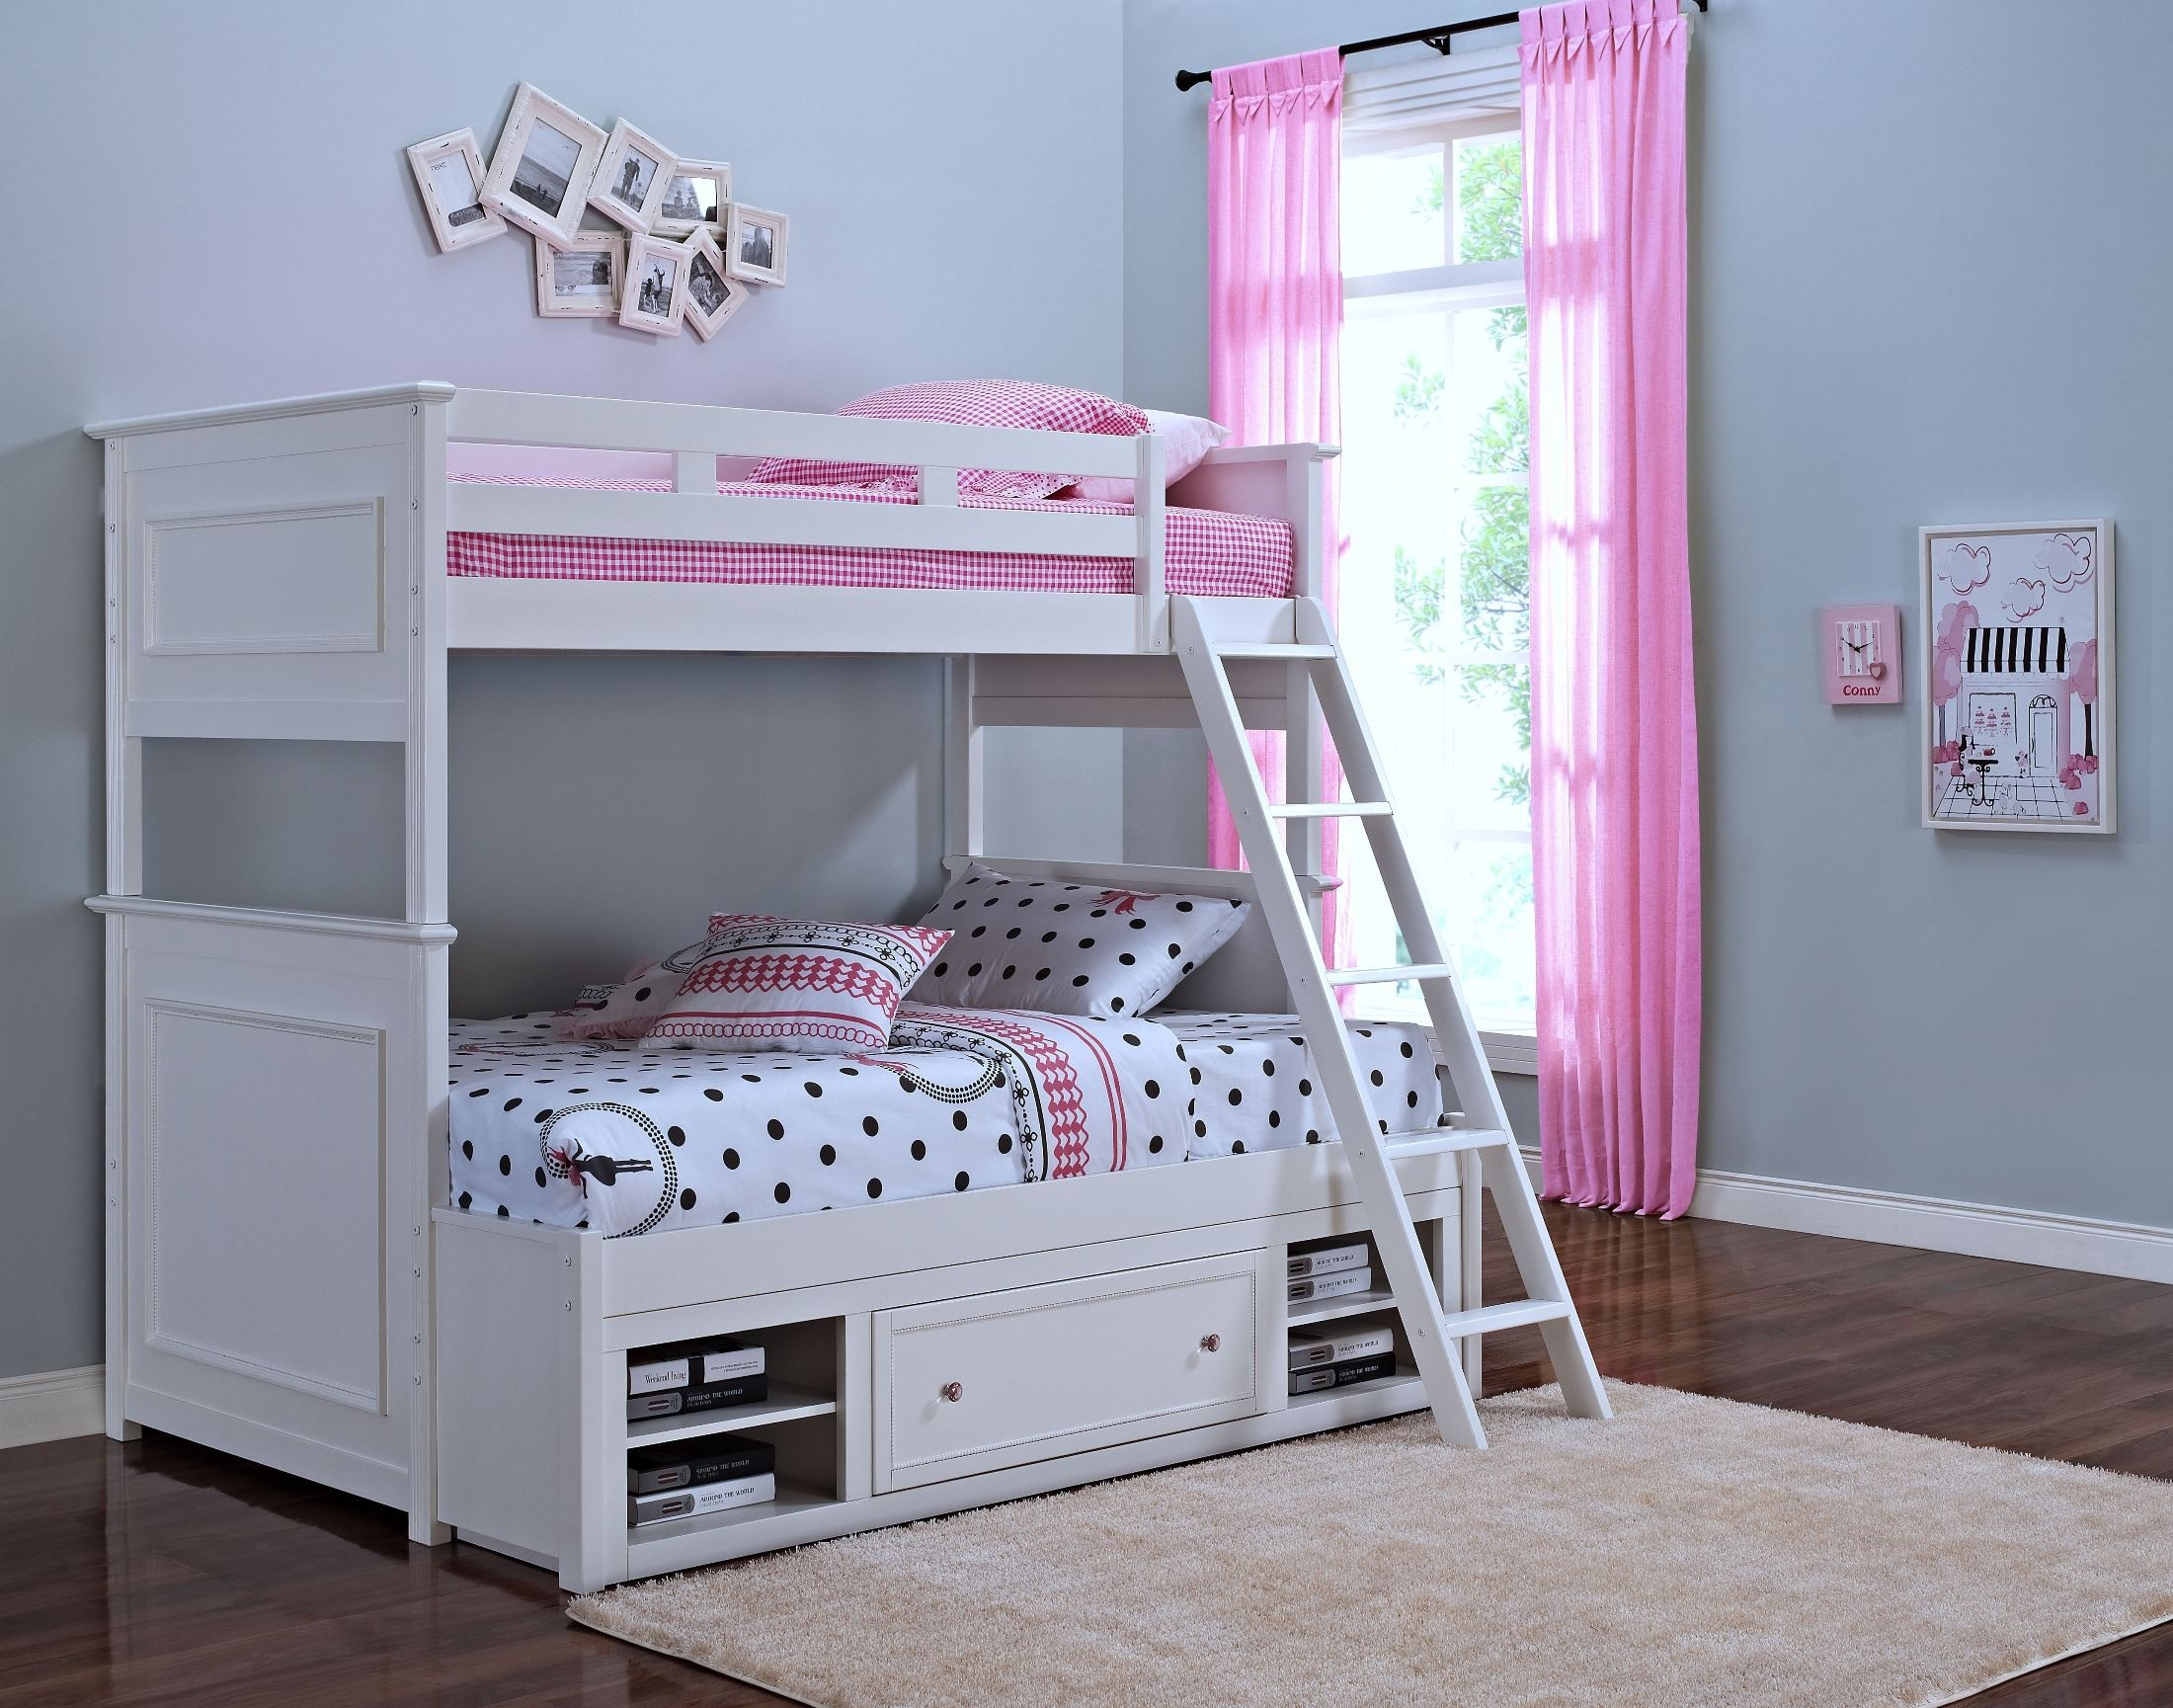 Megan youth white storage bunk bedroom set from new classics 05 242 518 538 598 coleman for Youth storage bedroom furniture